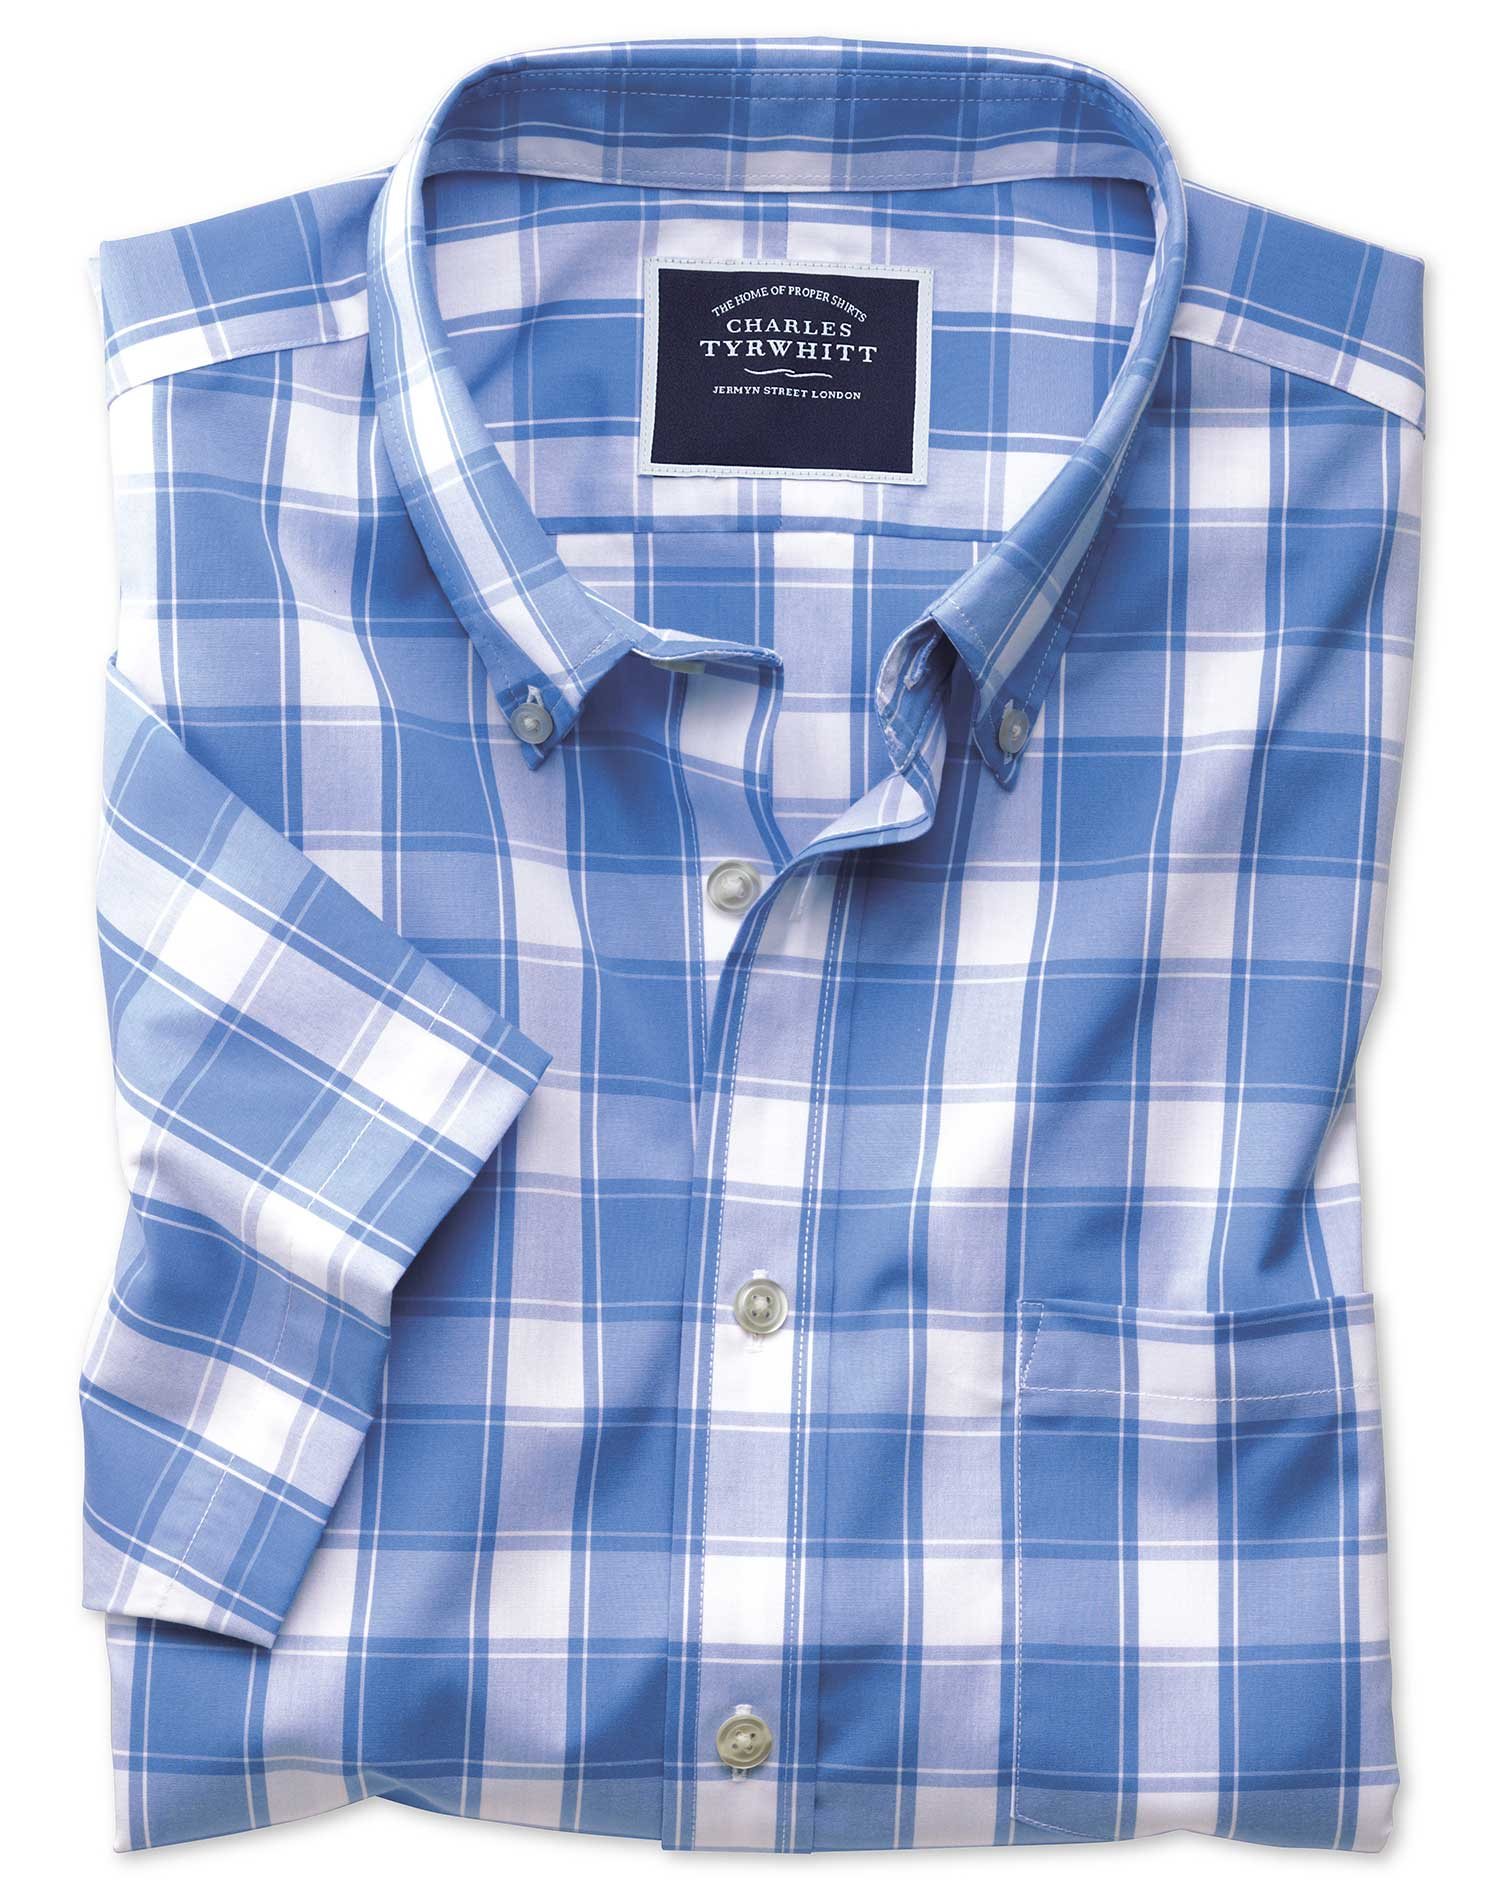 Slim Fit Button-Down Non-Iron Poplin Short Sleeve Blue and White Check Cotton Shirt Single Cuff Size